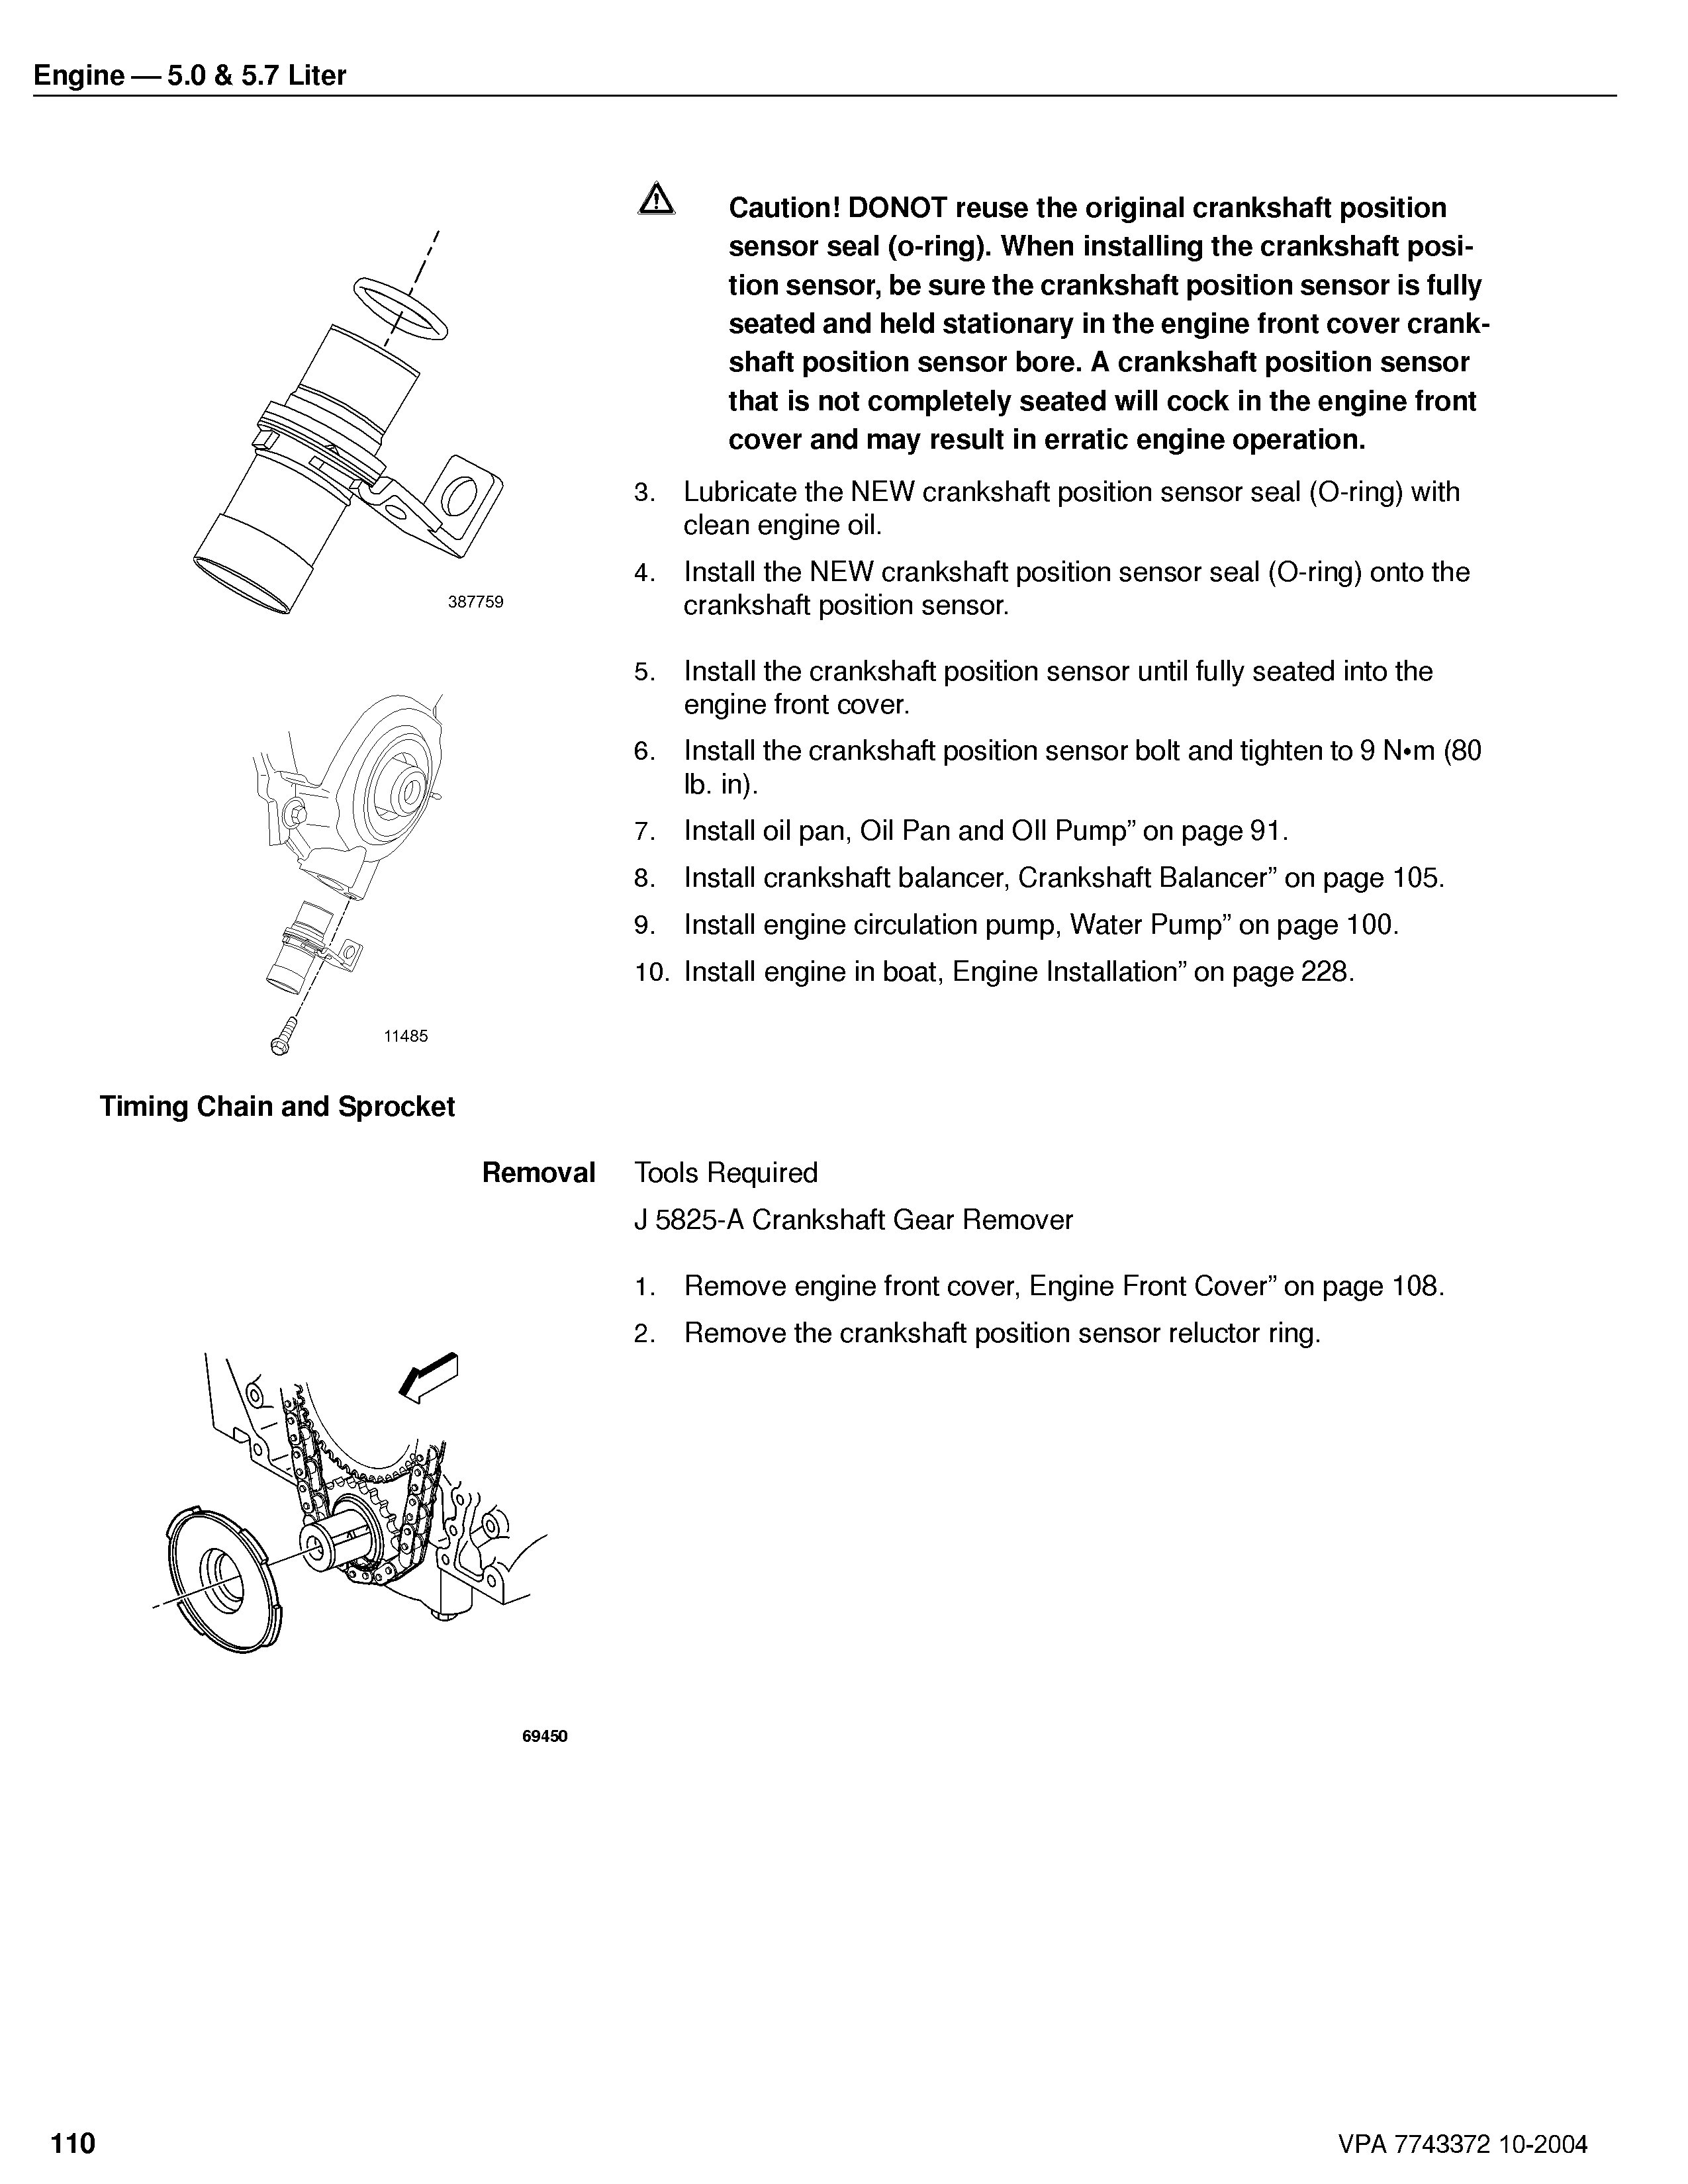 How To Change A Crank Sensor On Volvo Penta 57 Gxi E 2 4 Twin Cam Engine Diagram Crankshaft Position I Dont Know You Want Leave This But That Is Where Stand Your End And Do It Make Sure Are Happy